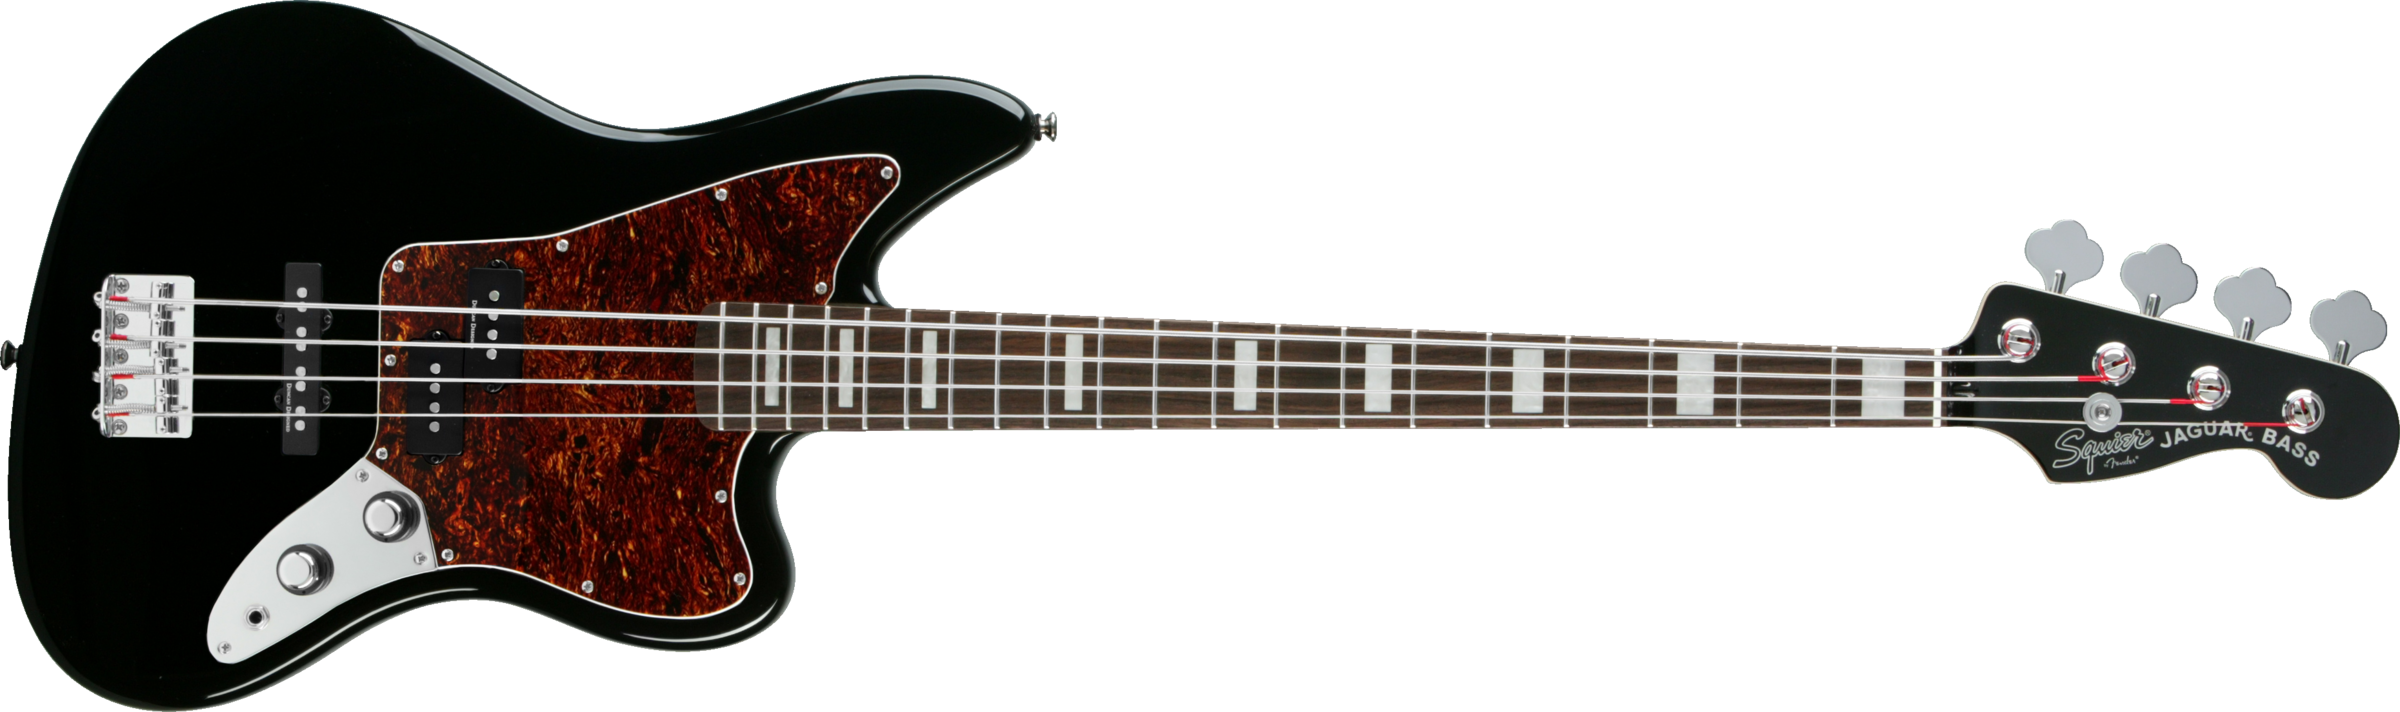 My eb bass squier vintage modified jazz bass - Vintage Modified Jaguar Bass Rosewood Fingerboard Black